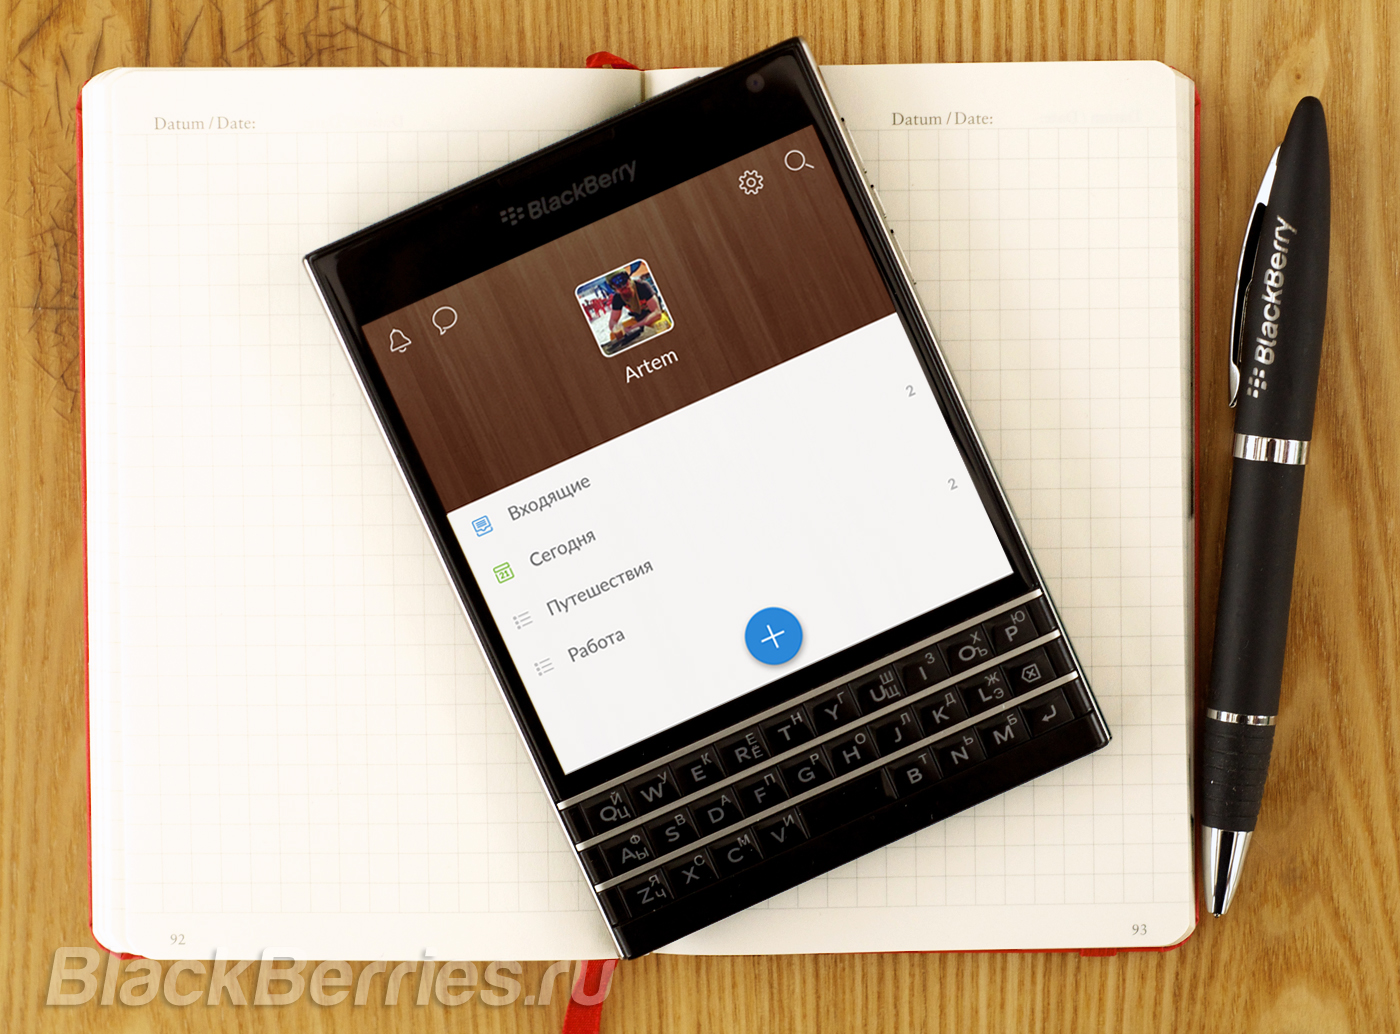 BlackBerry-Passport-Wunderlist